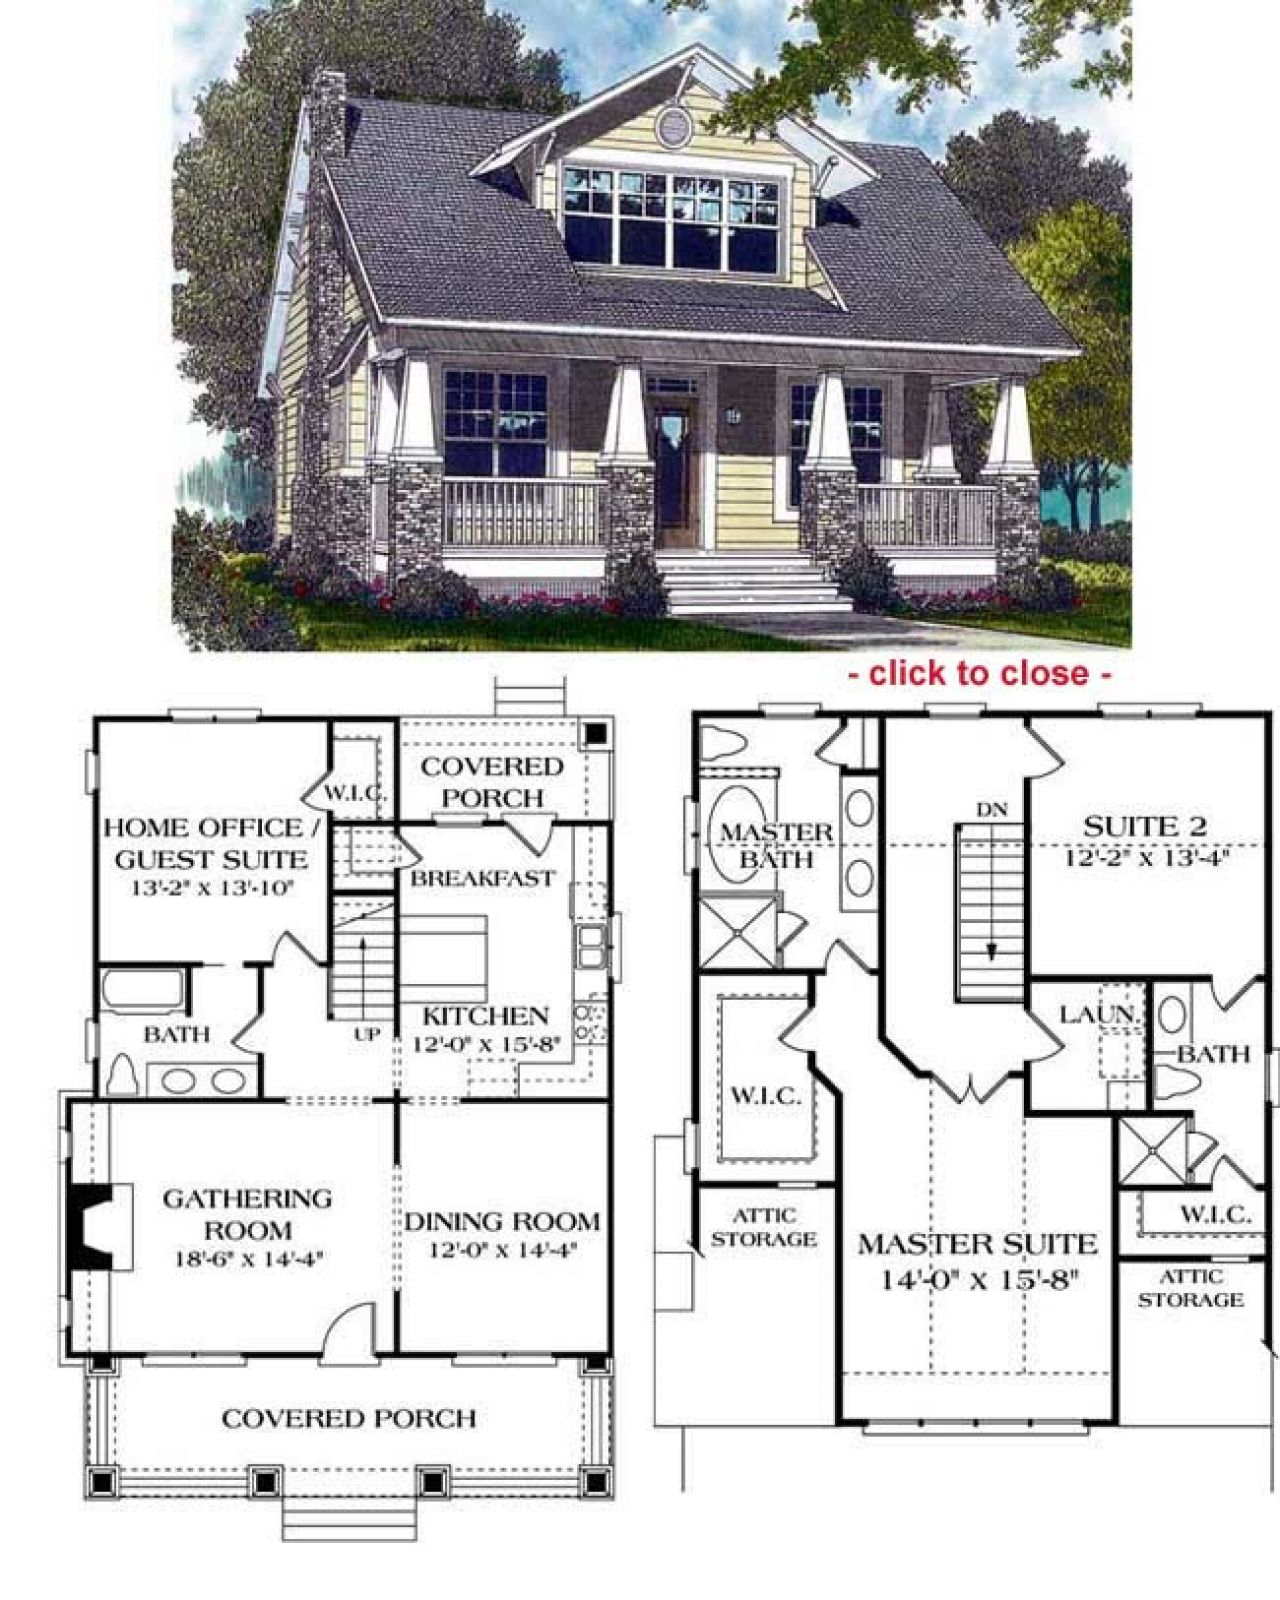 Bungalow house styles craftsman house plans and for Bungalow building plans